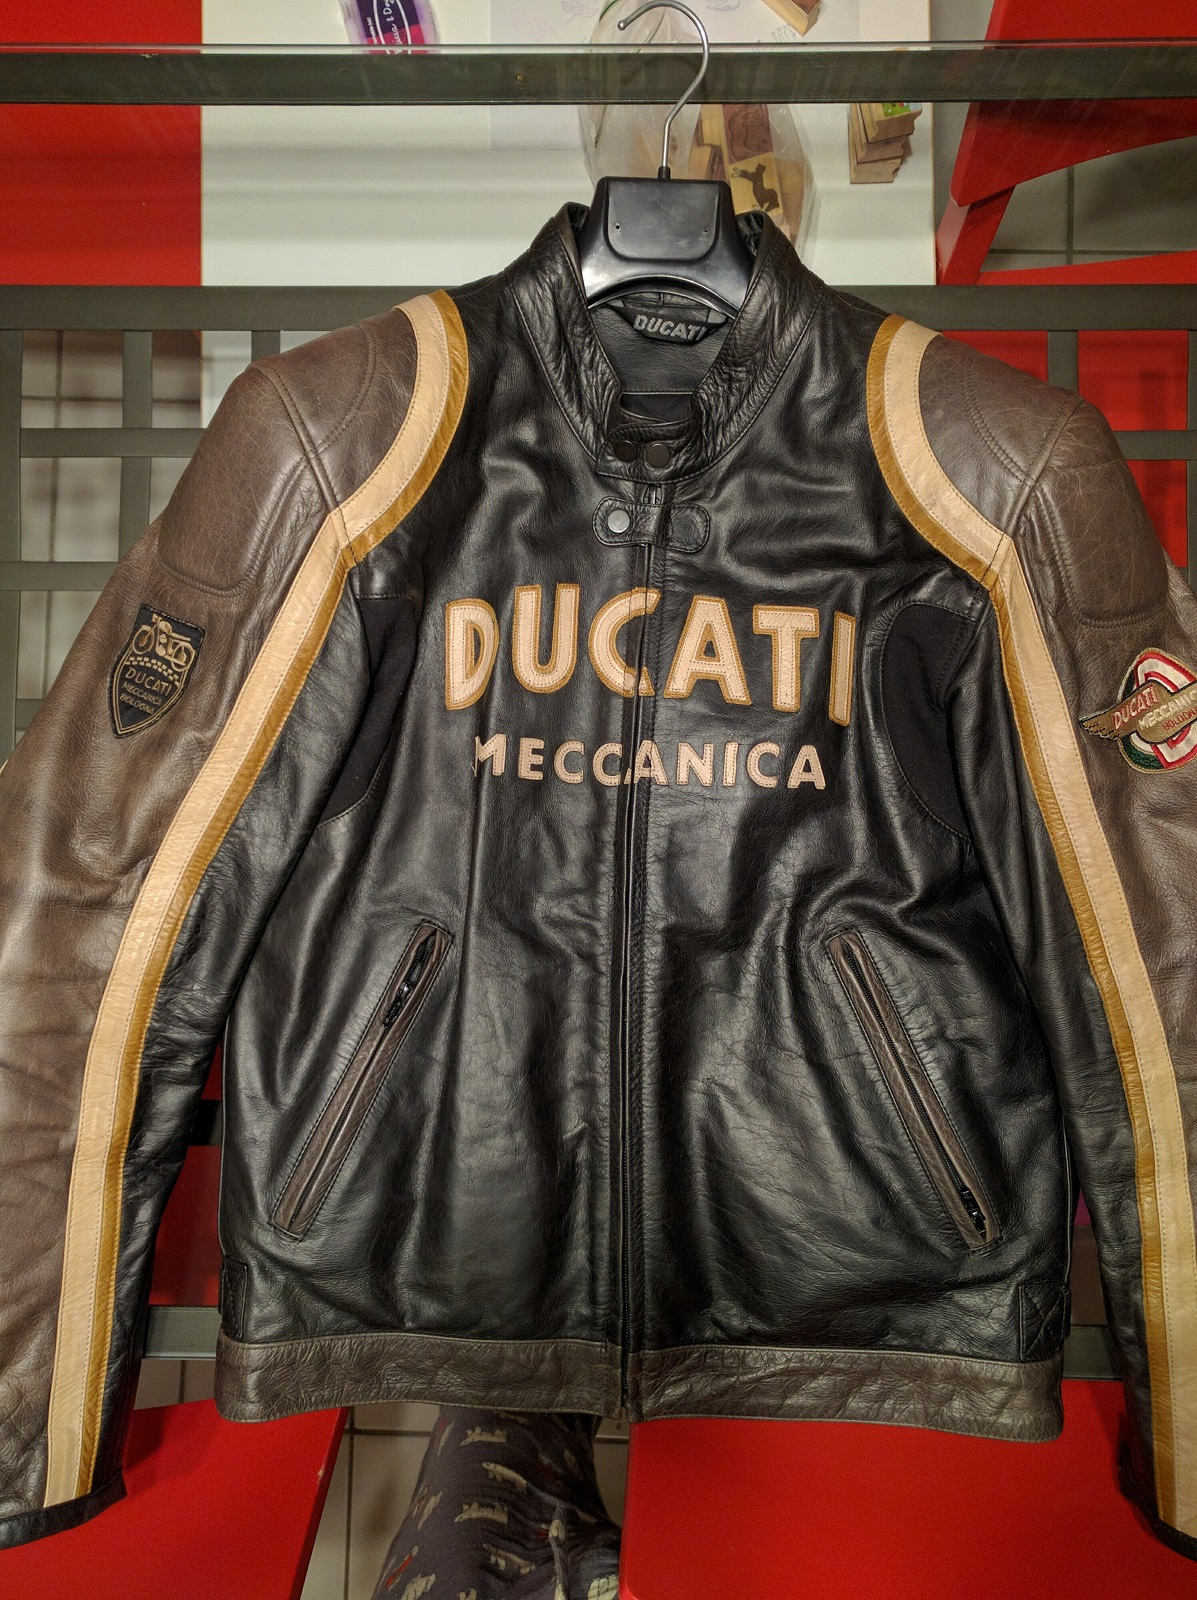 Ducati Meccanica Old Times Leather Jacket